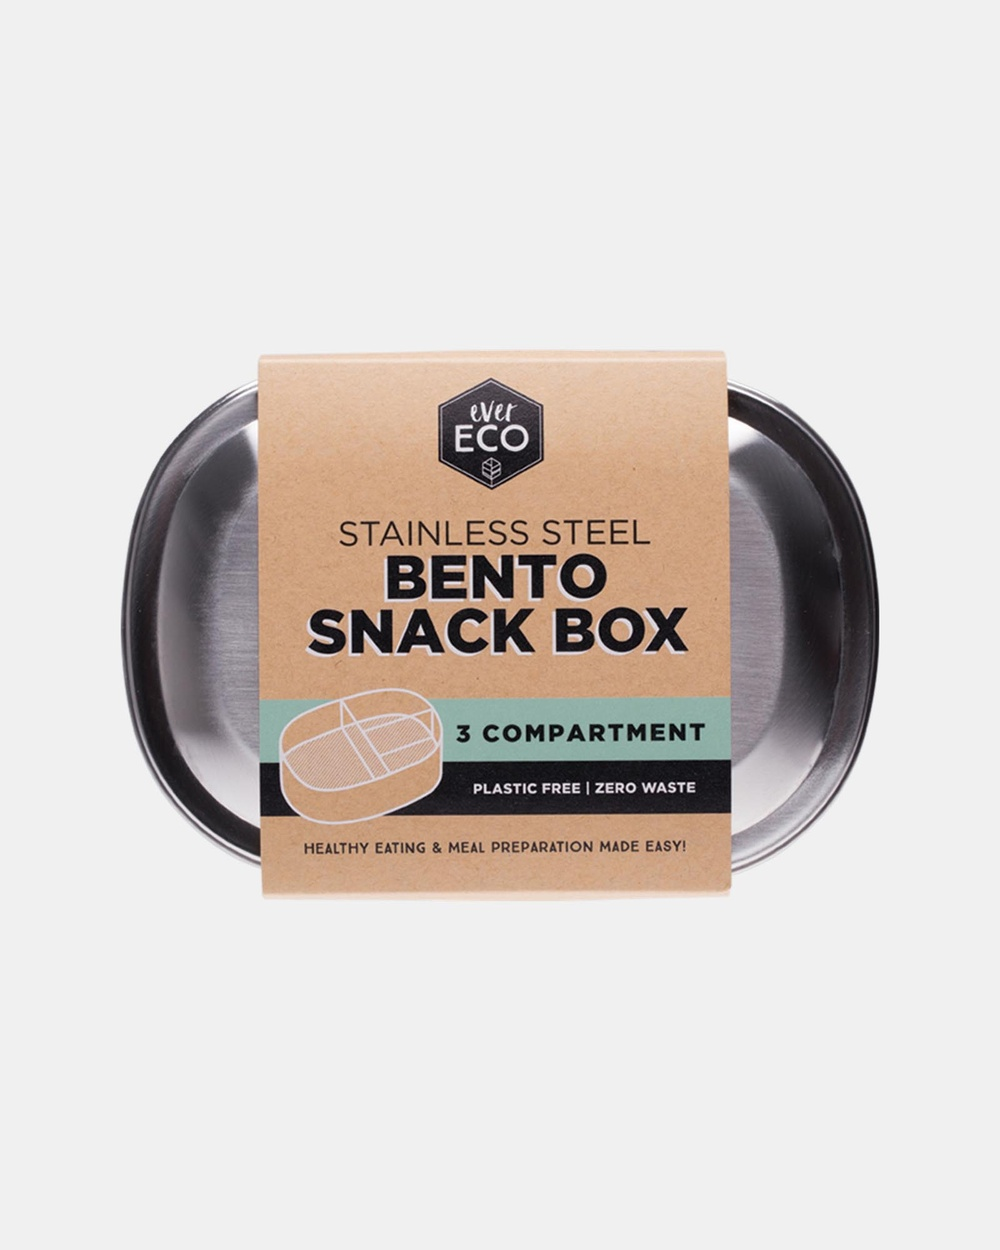 Ever Eco Stainless Steel Bento Snack Box 3 Compartments 580ml Stainless Steel